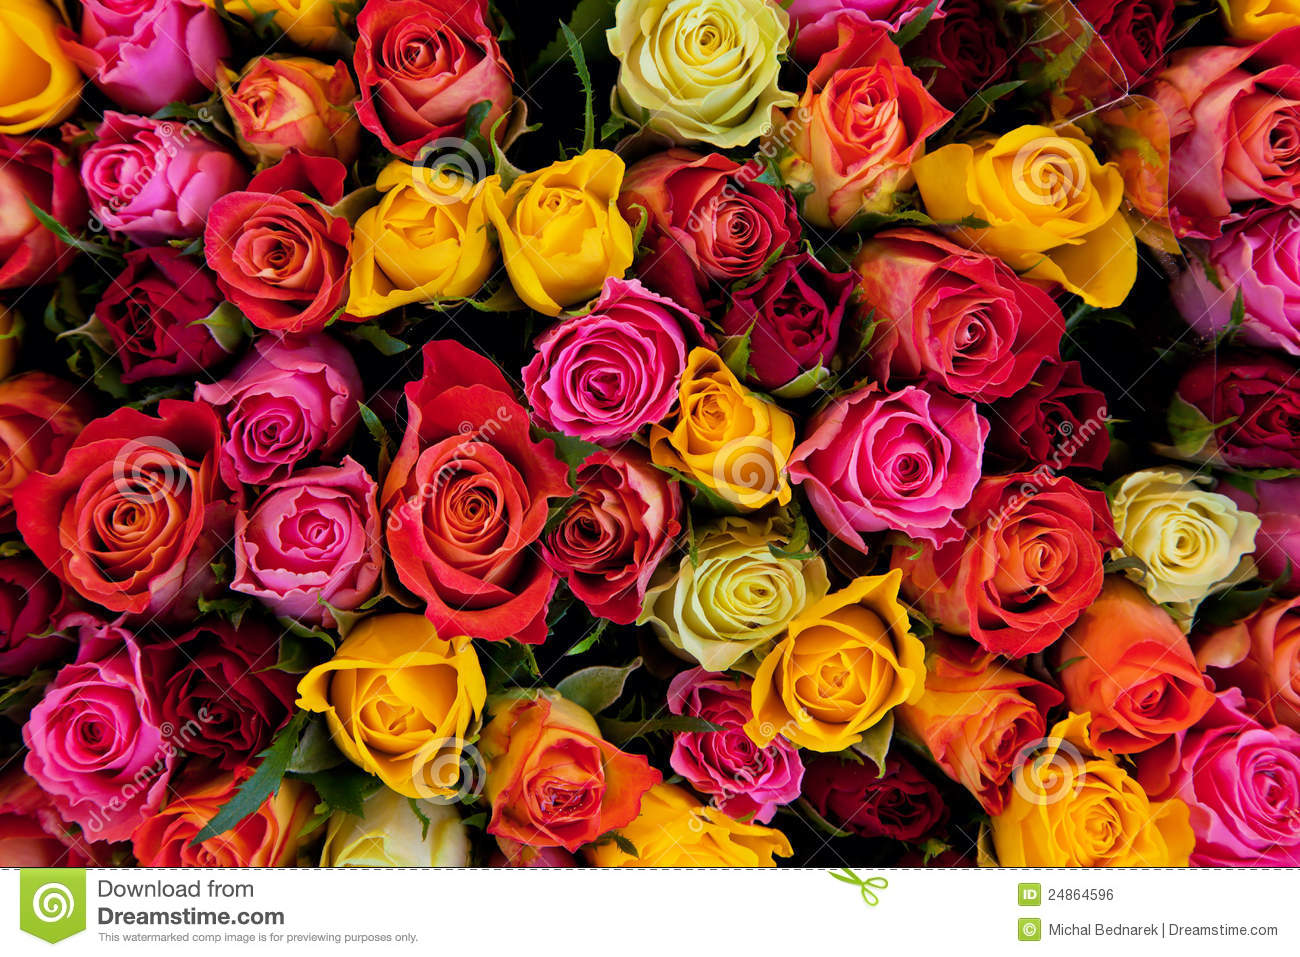 Iphone 6 Orange Flower Wallpaper Colorful Roses Background Stock Photo Image Of Flower